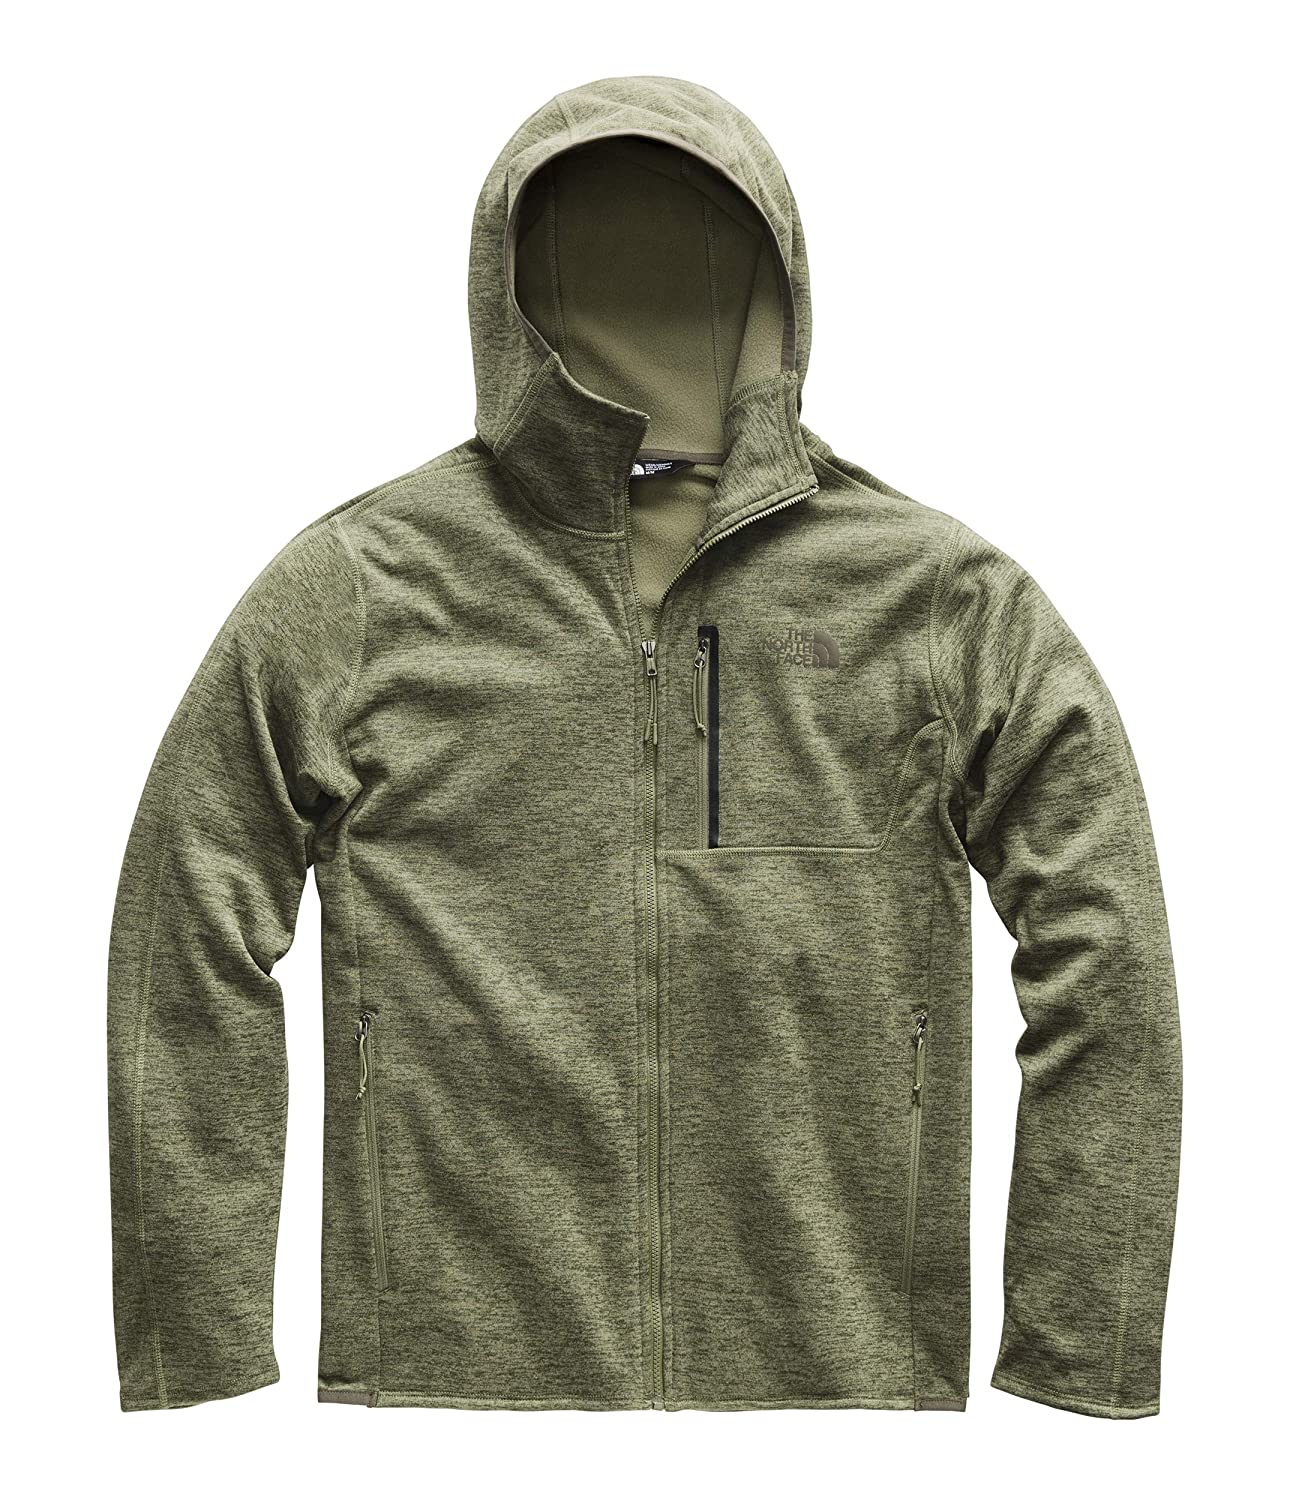 a9527776487e02 The North Face Men s Canyonlands Hoodie at Amazon Men s Clothing store